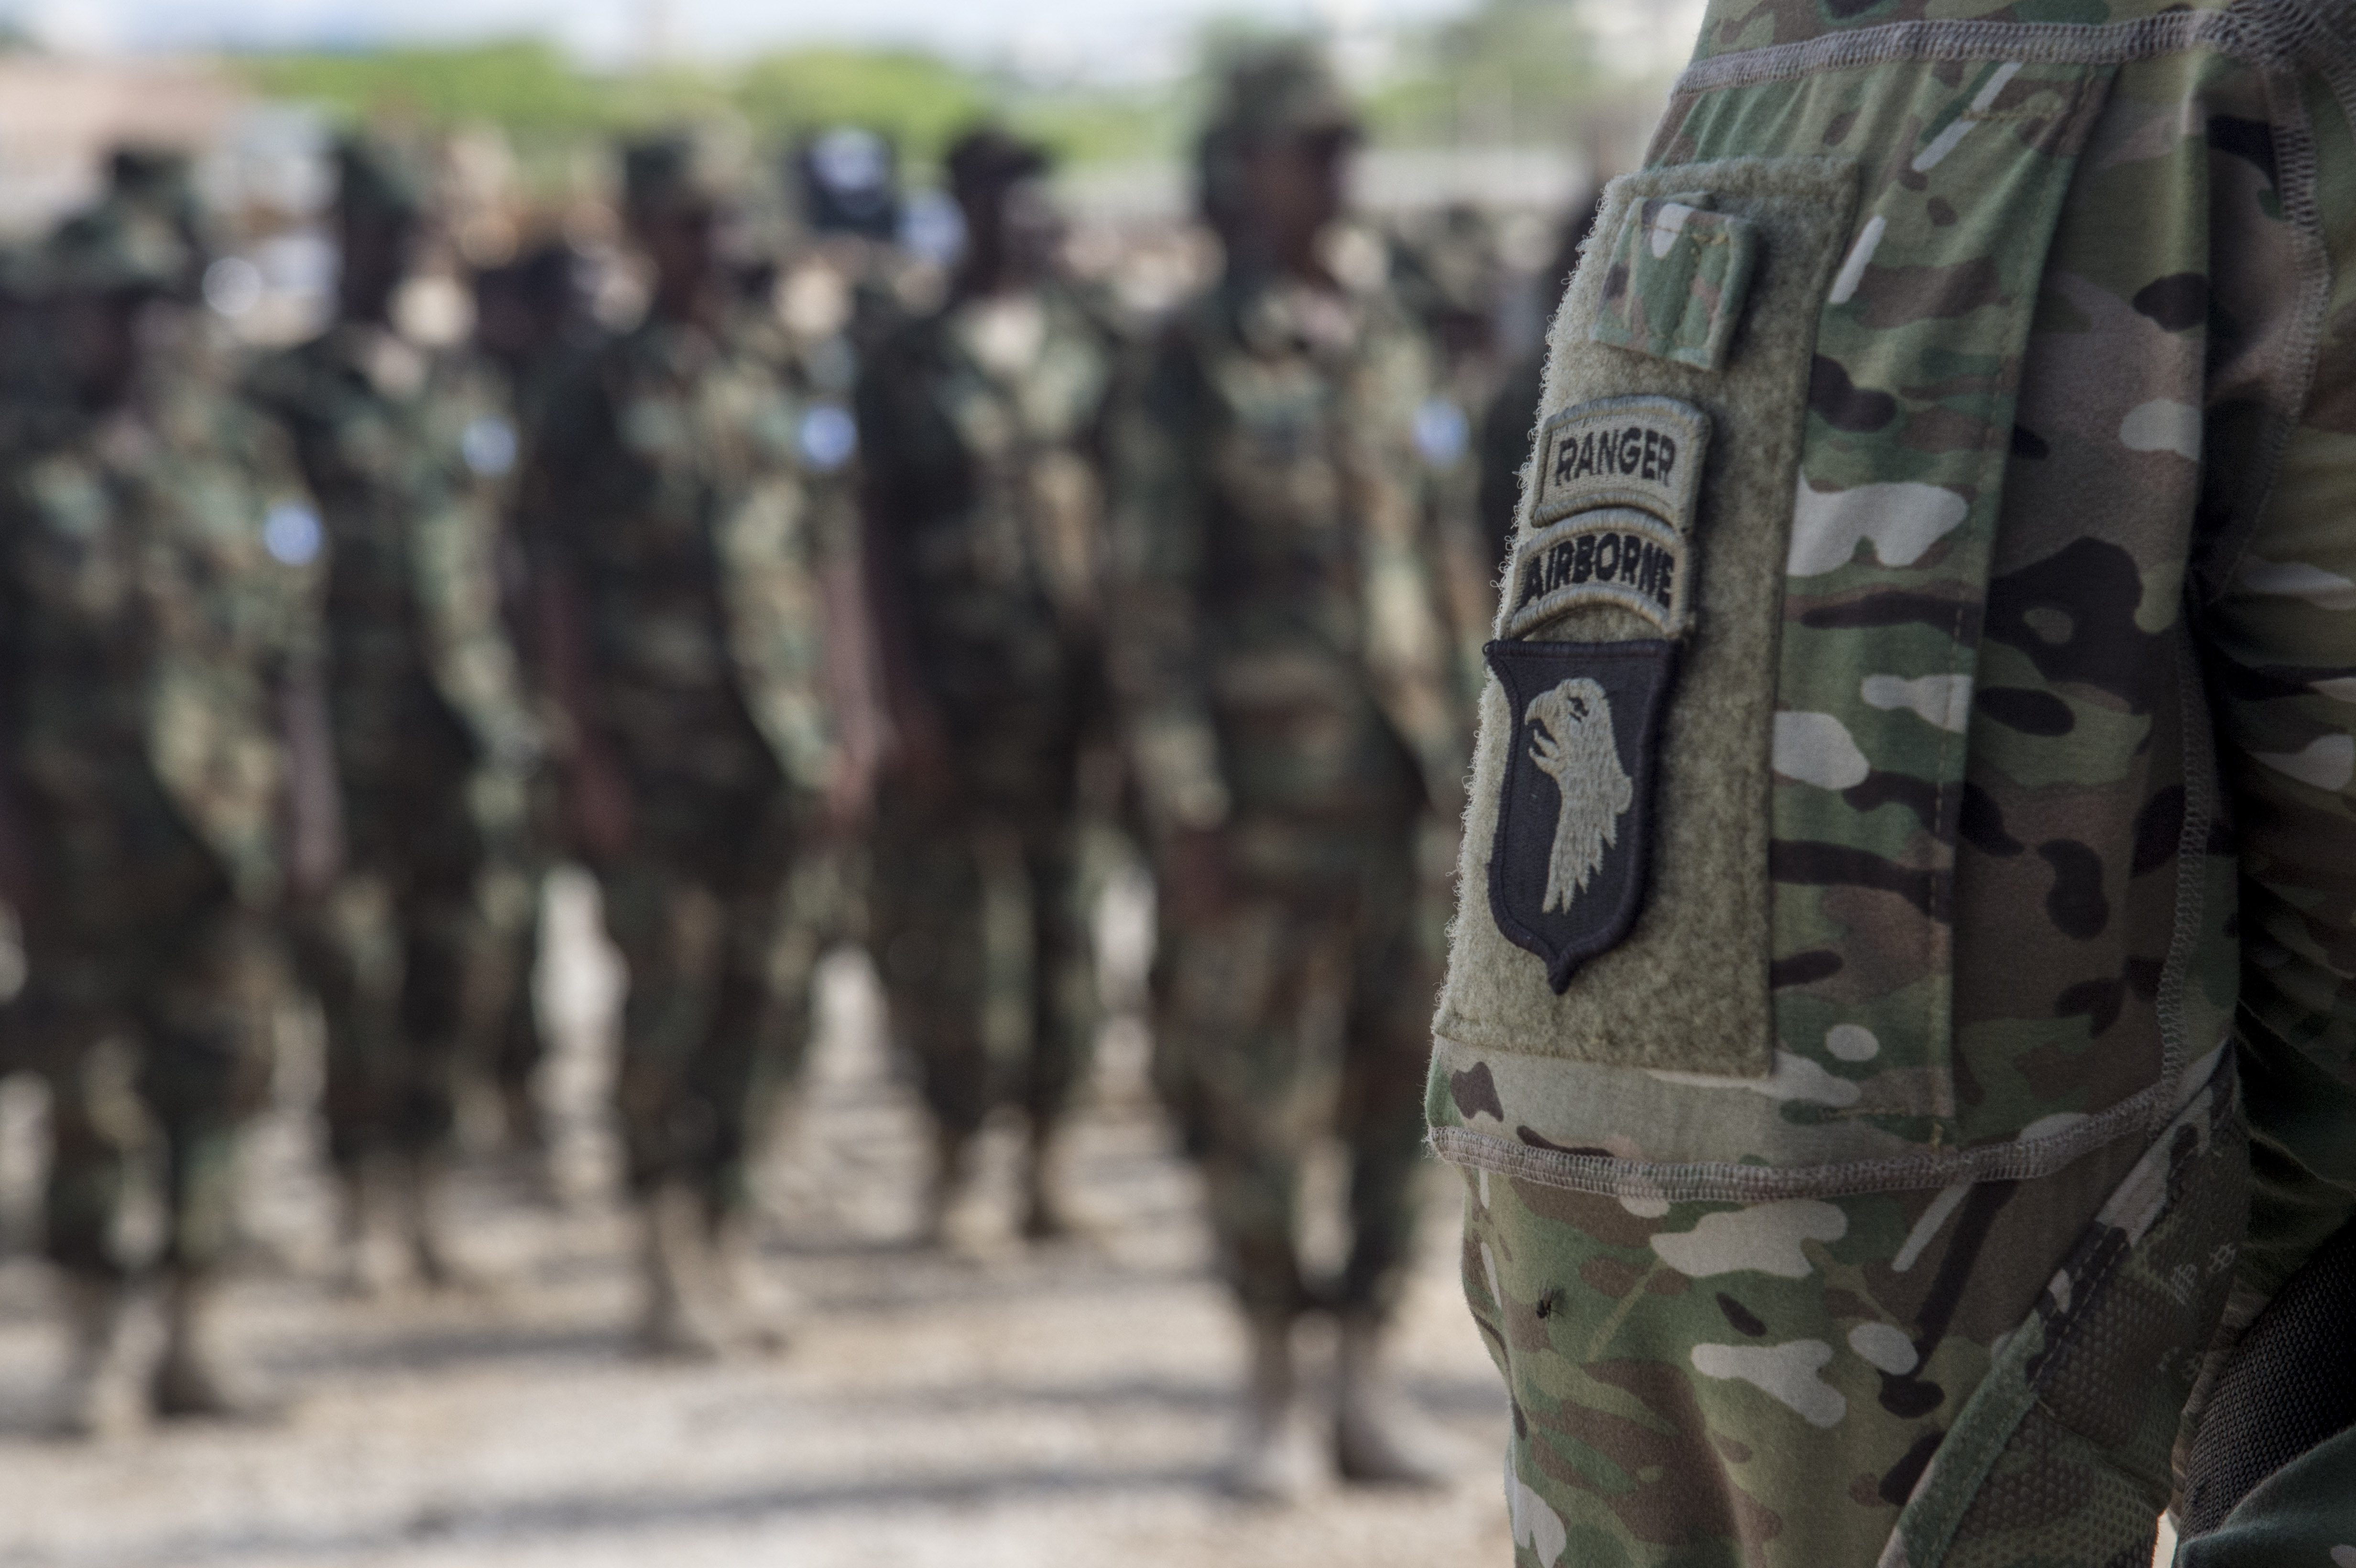 Five U.S. Army 101st Airborne Soldiers deployed with U.S. Army Africa to train Somali National Army soldiers stand at a graduation formation on May 23, 2017, in Mogadishu, Somalia. The six-week logistics course focused on various aspects of moving personnel, equipment and supplies. (U.S. Air National Guard photo by Tech. Sgt. Joe Harwood)